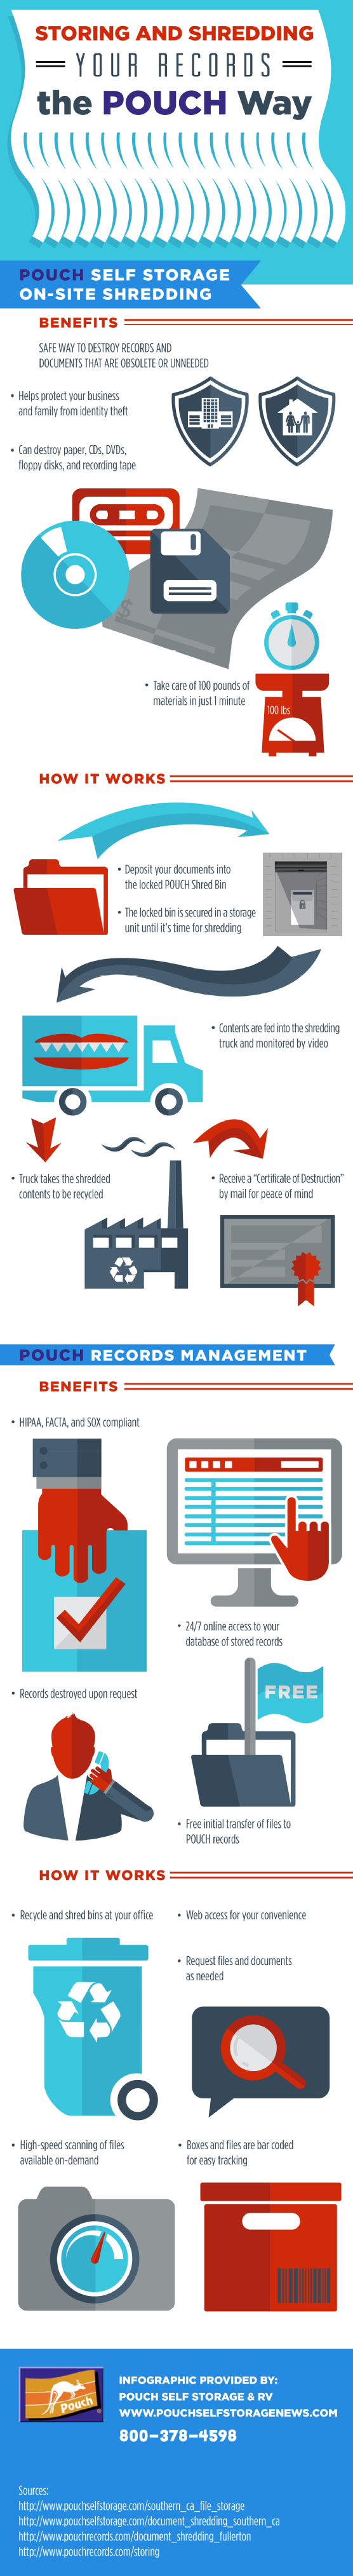 Storing-and-Shredding-Your-Documents-the-POUCH-way-Infographic-revised2